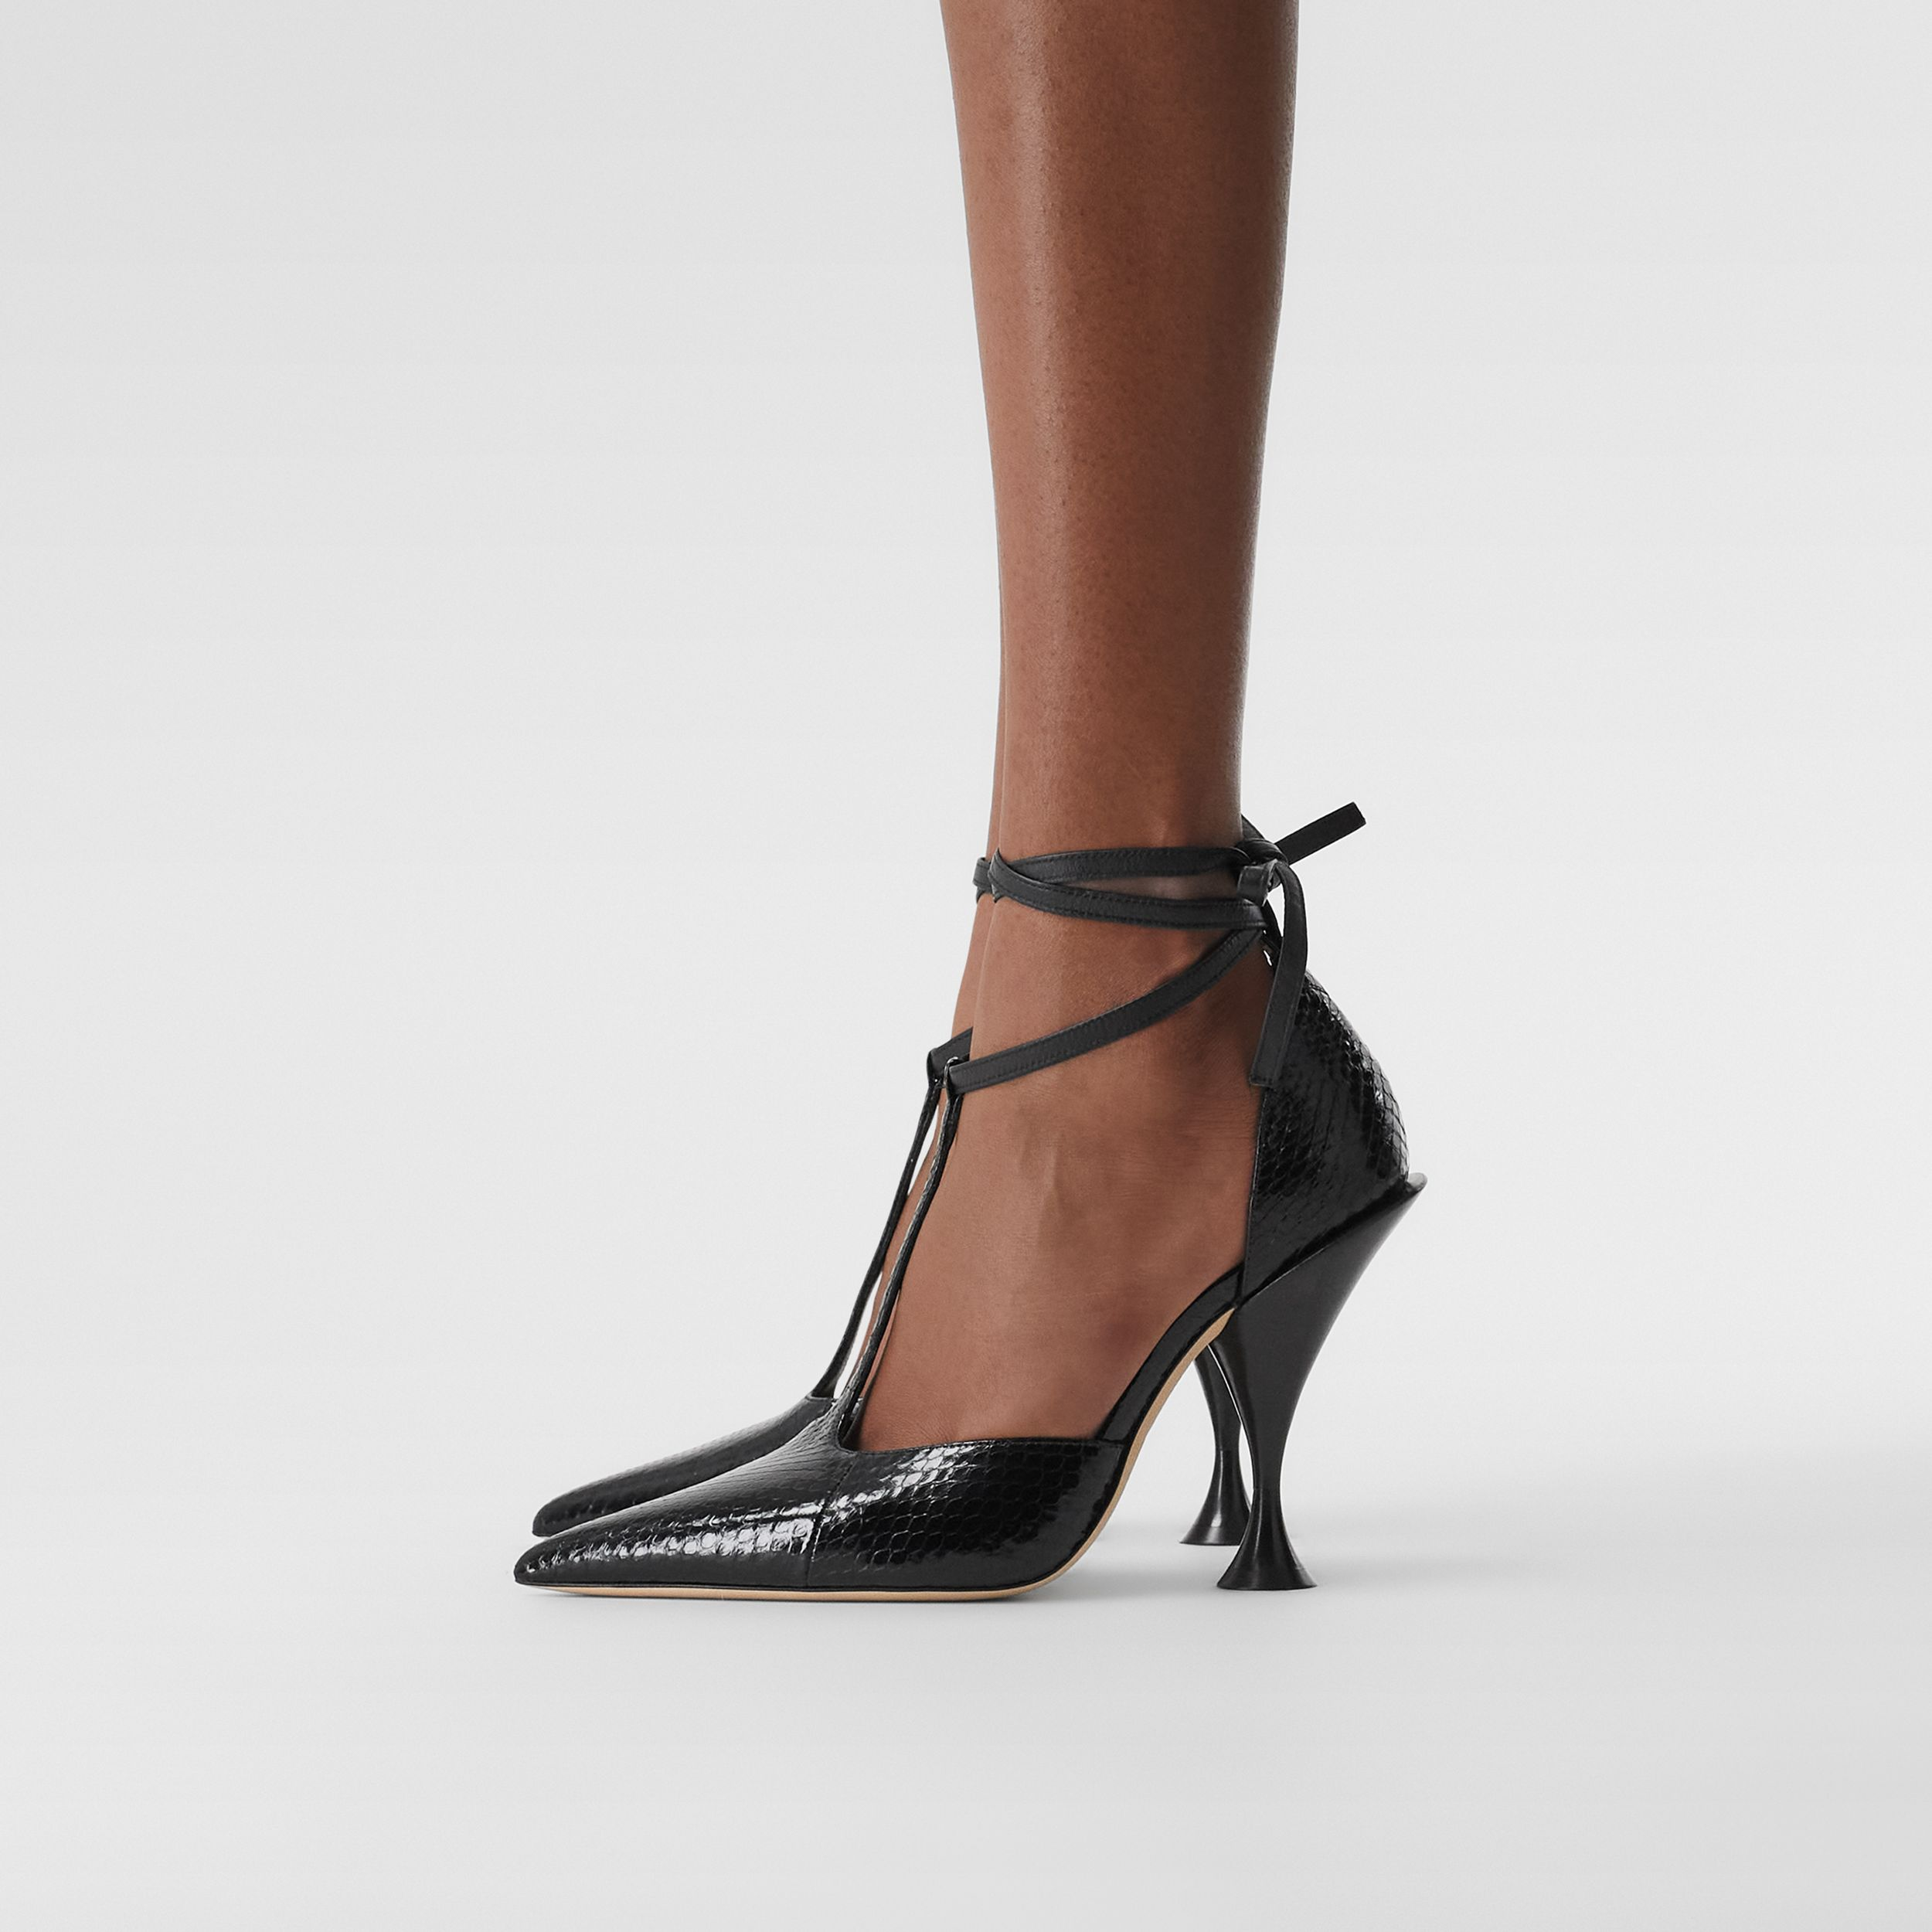 Snakeskin and Leather Point-toe Pumps in Black - Women | Burberry - 3